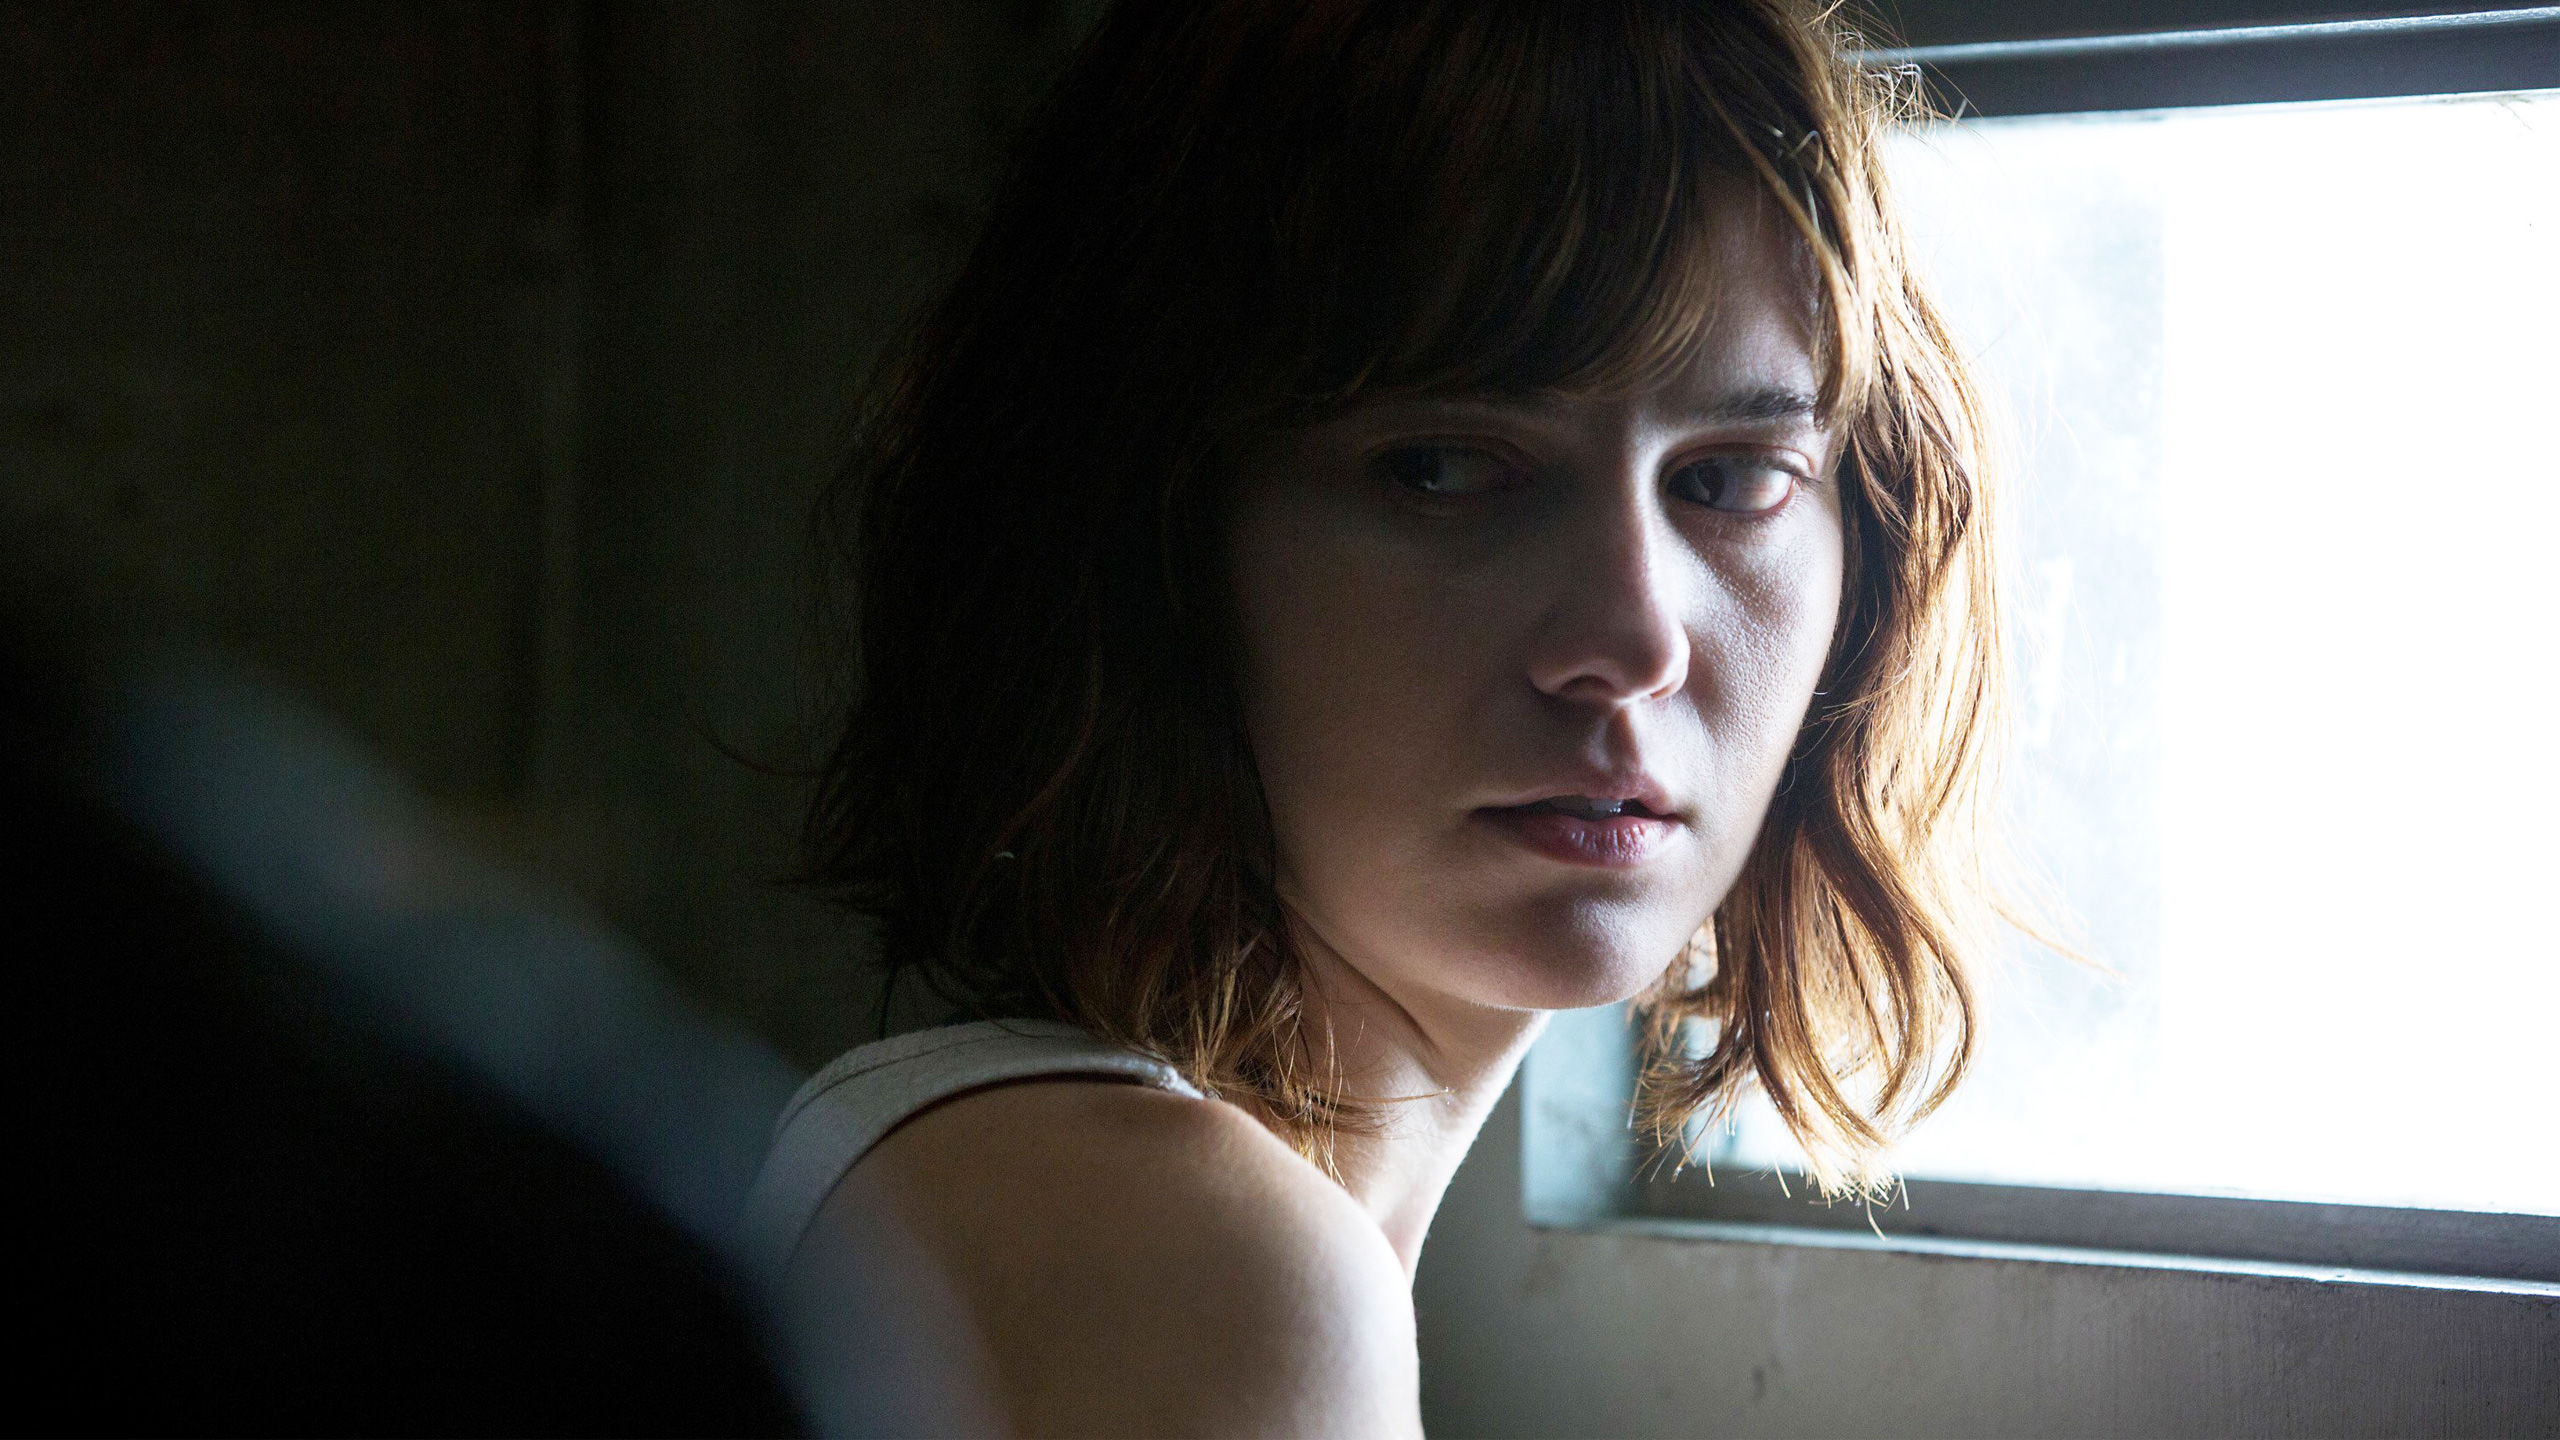 Cloverfield Lane Mary Elizabeth Winstead wallpaper